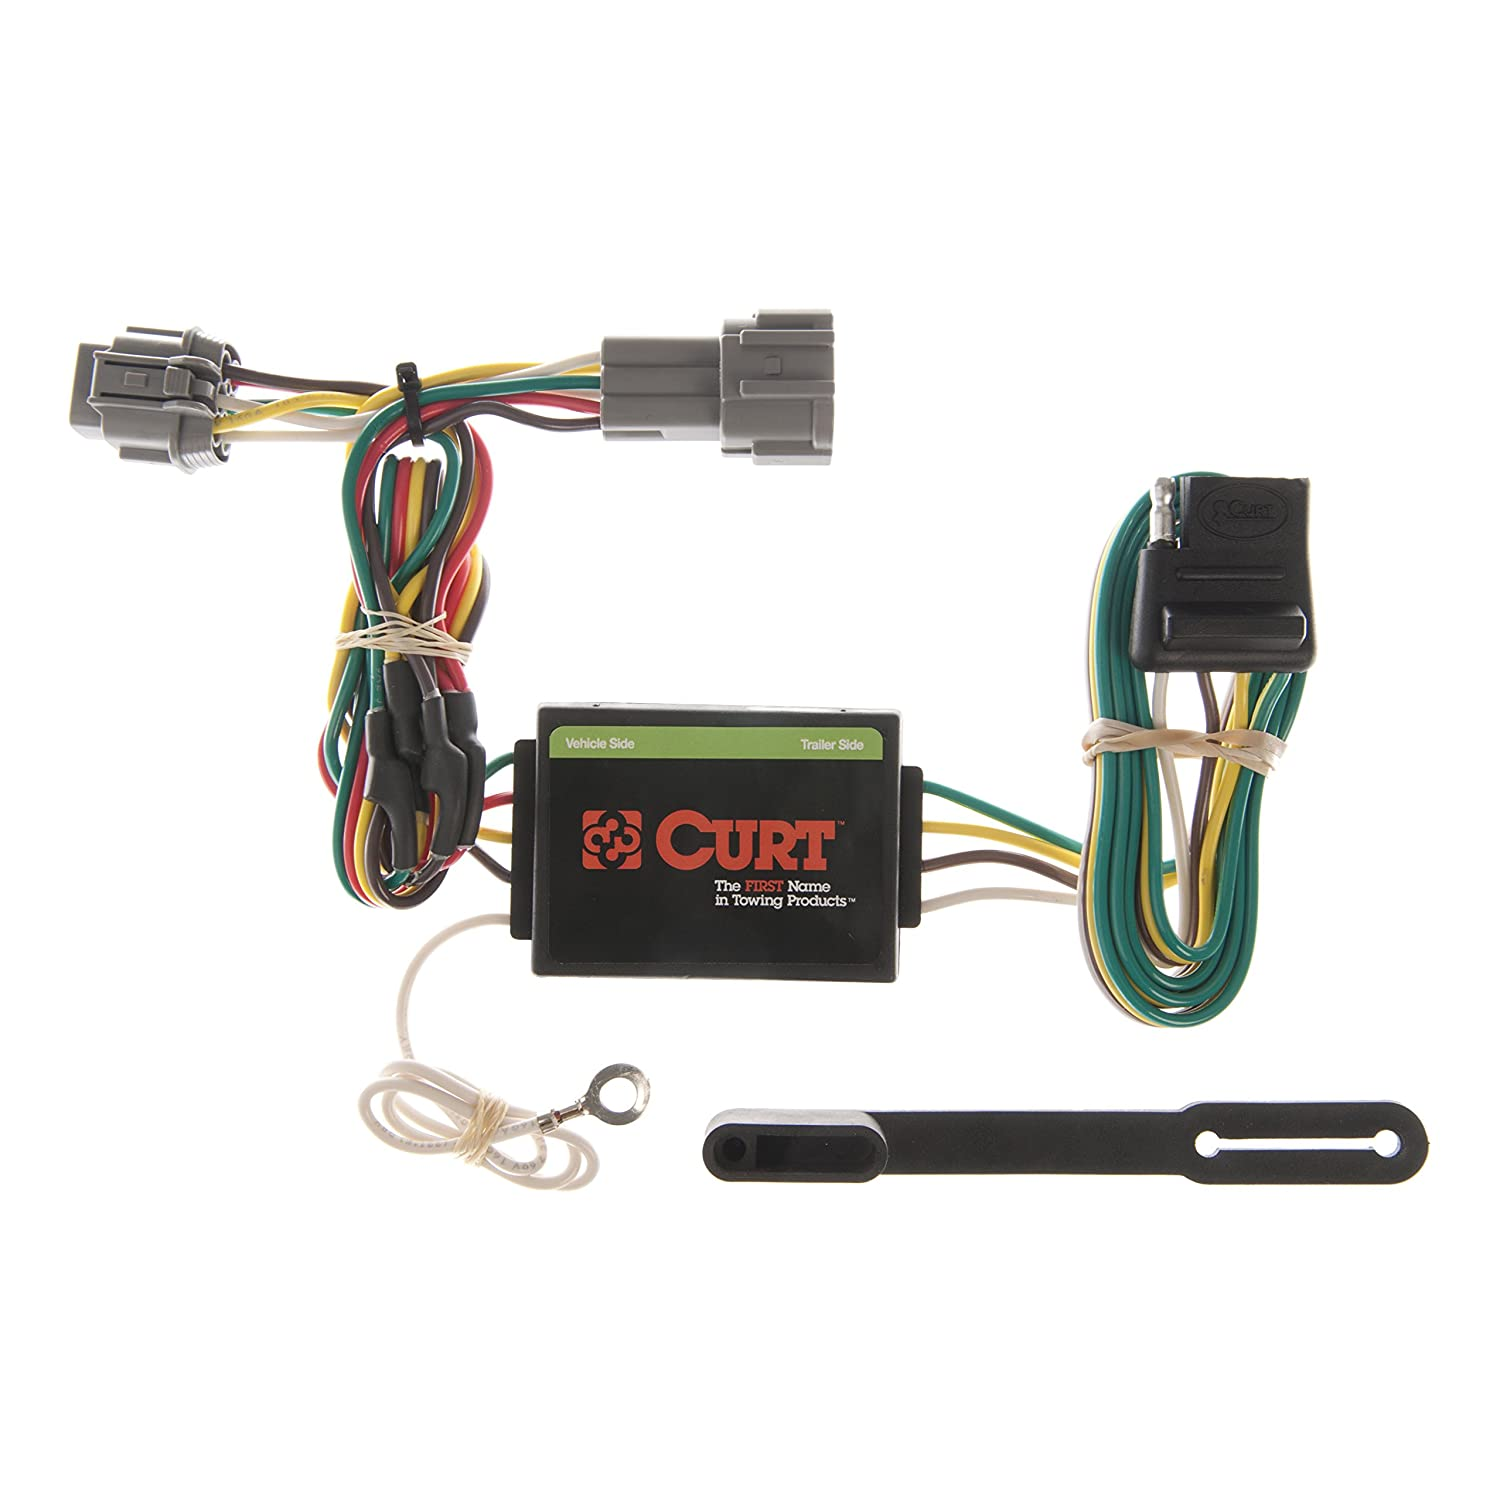 Curt Trailer Hitch Wiring 2 Ball Mount W Drop Chevy Equinox For 00 03 Nissan Frontier Automotive